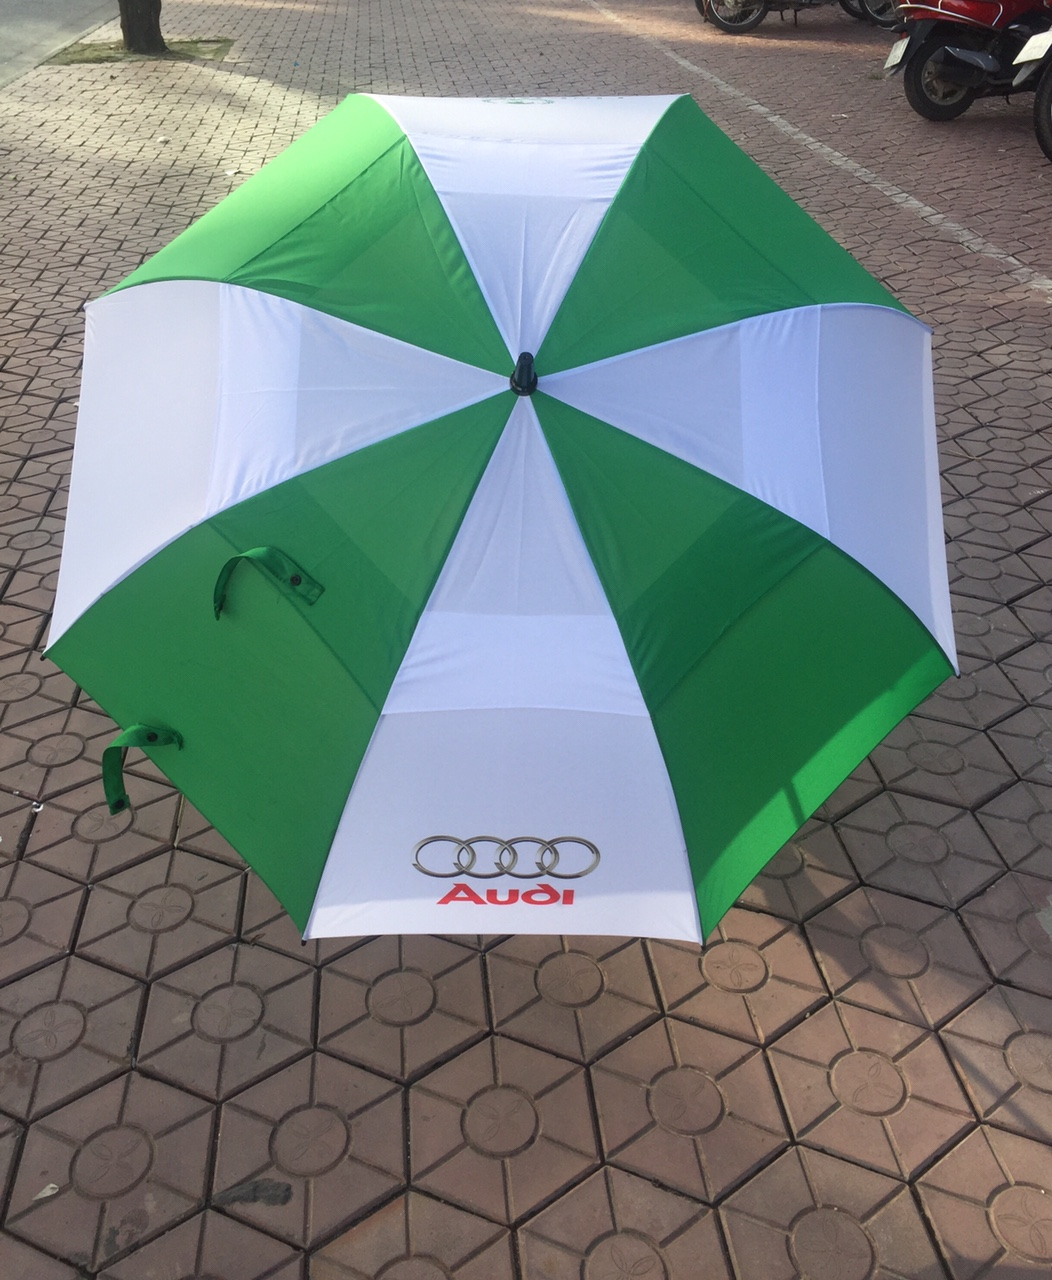 https://linkinggolf.com/o-golf-linking-audi-du24